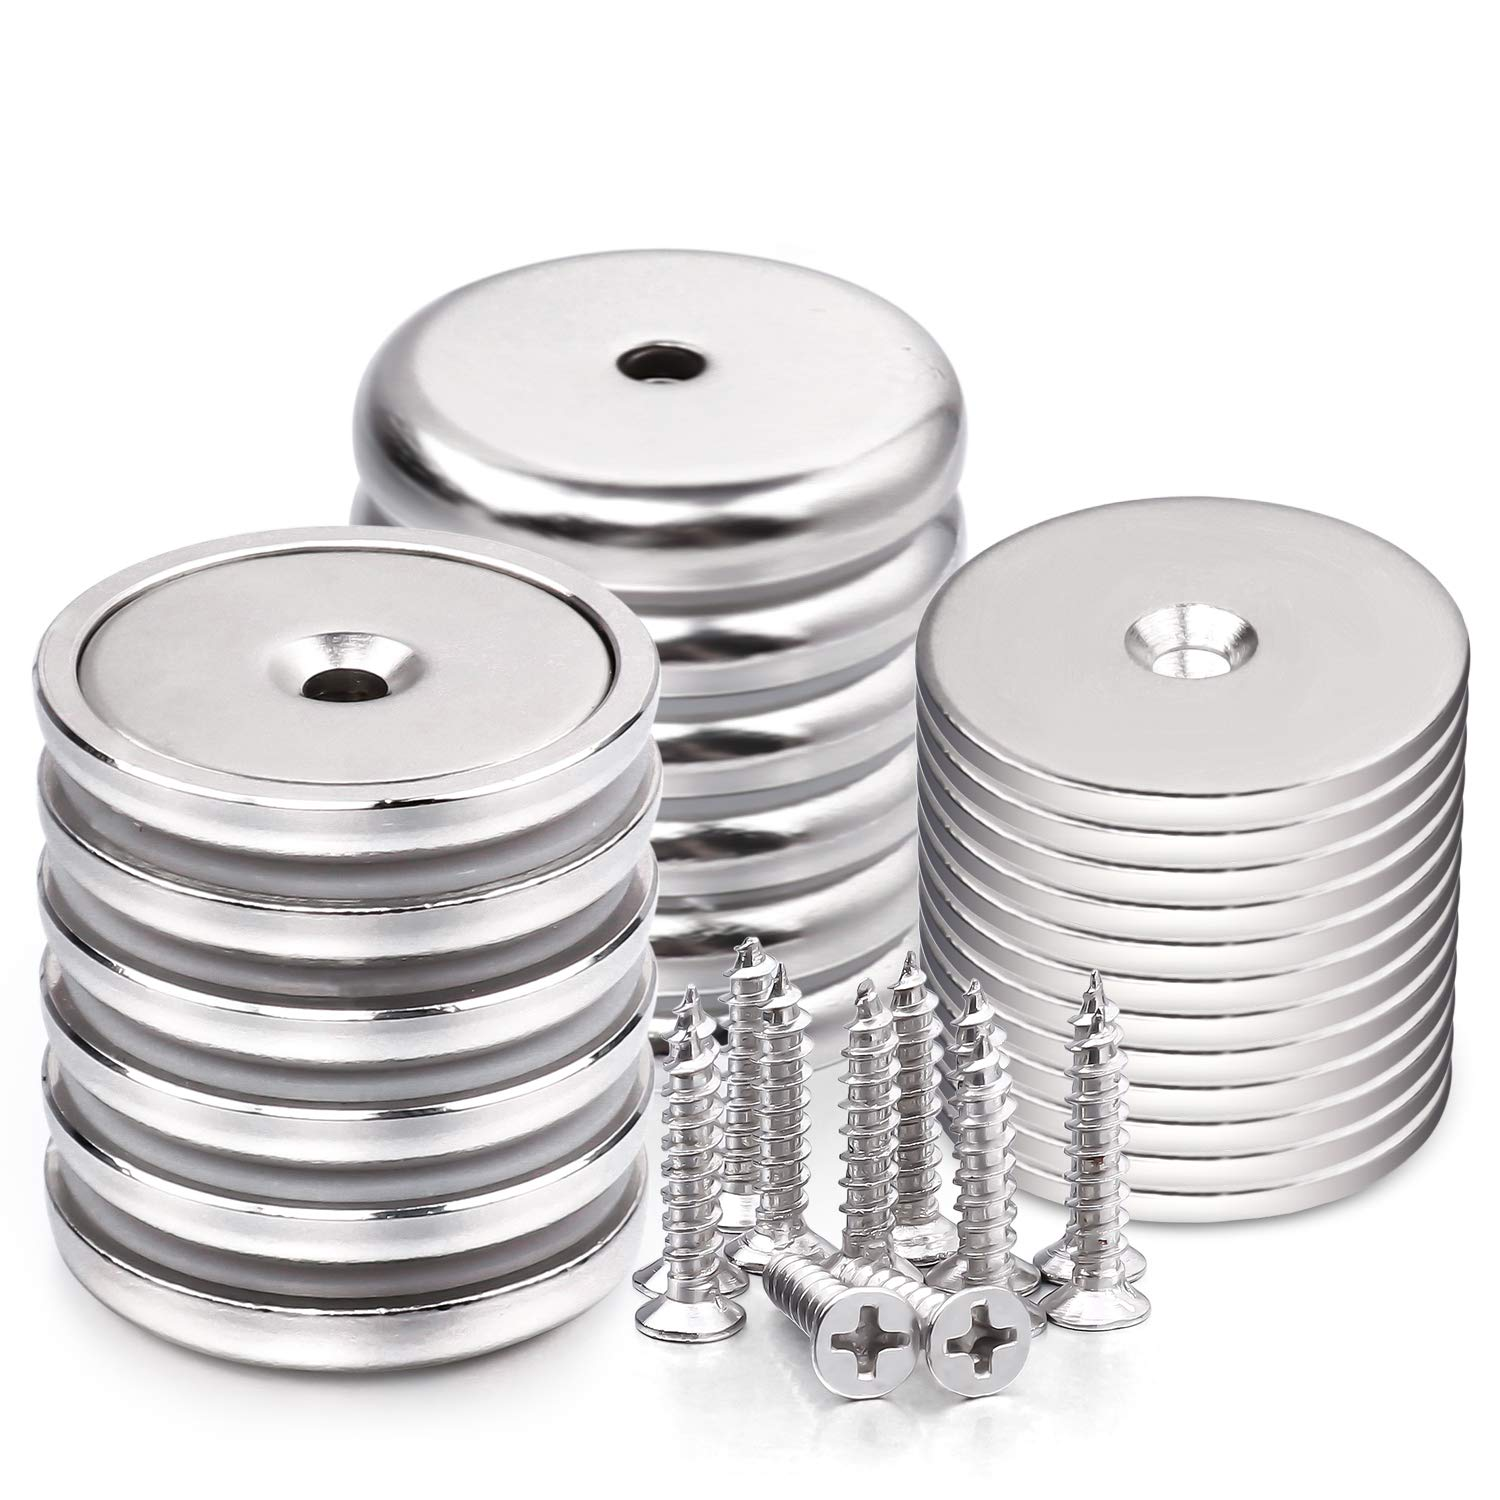 LOVIMAG Neodymium Cup Magnets with 95 LBS Pull Capacity Each - Dia 1.26